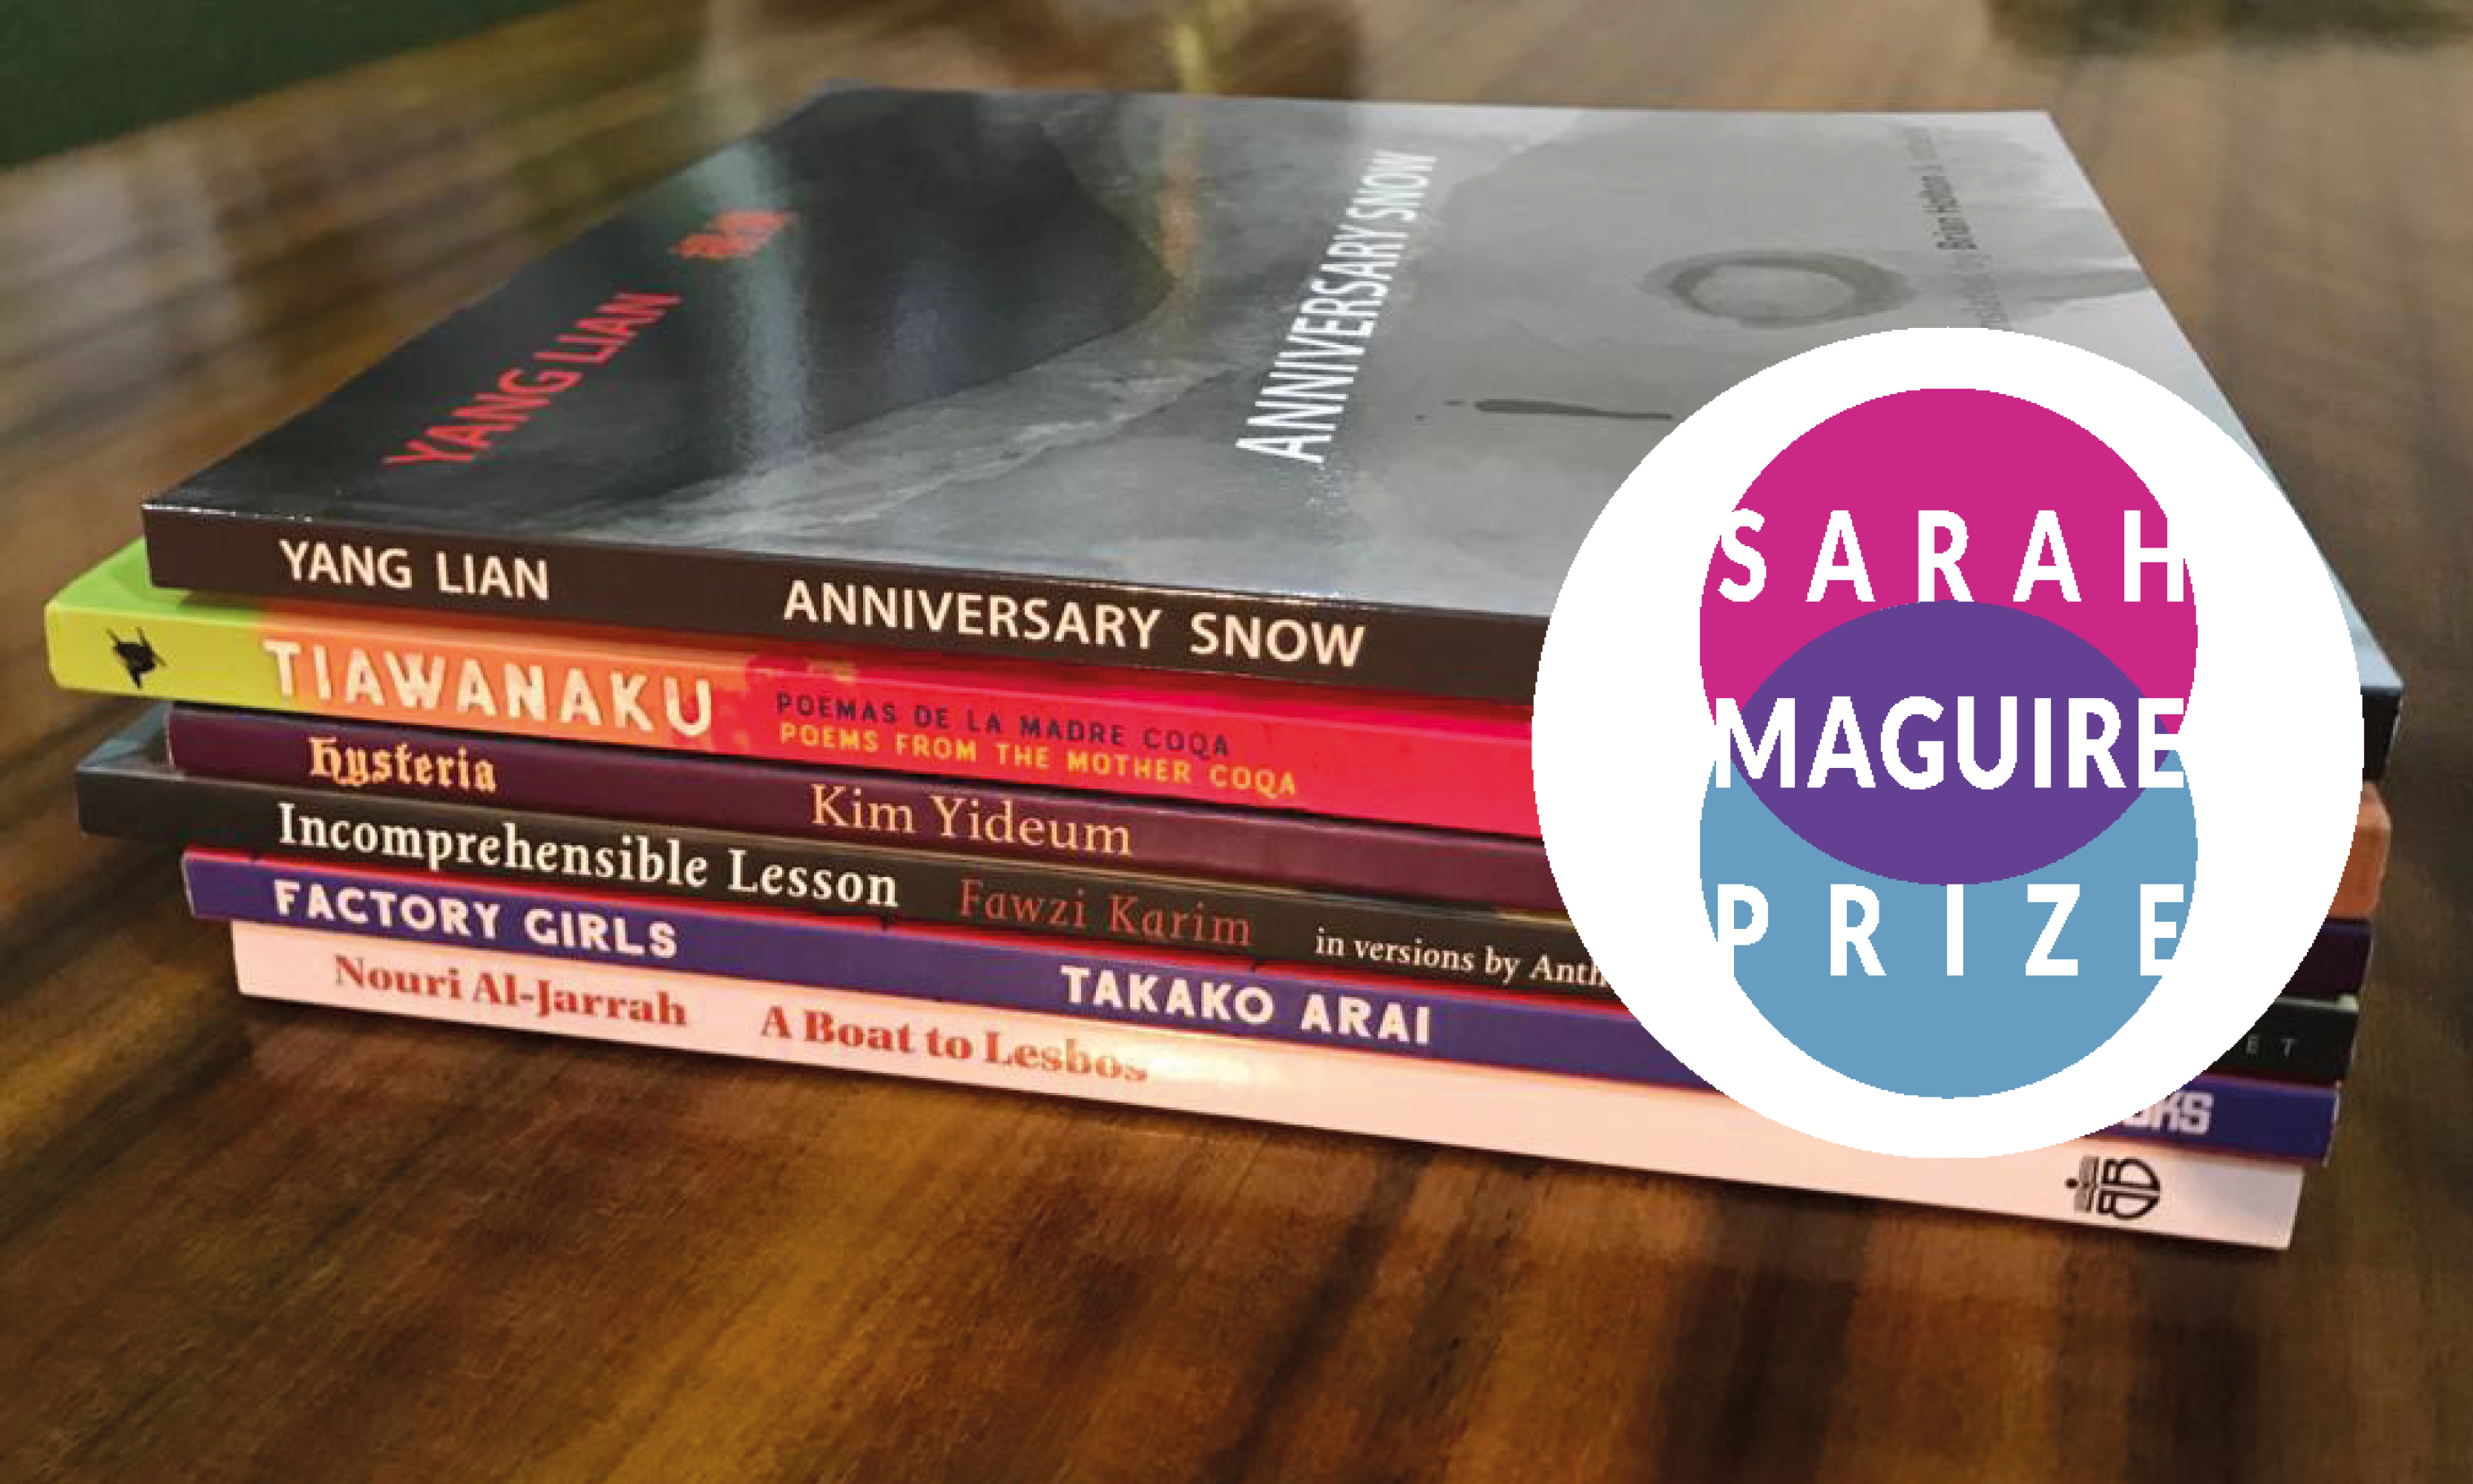 FREE EVENT - The Sarah Maguire Prize For Poetry in Translation Prizegiving